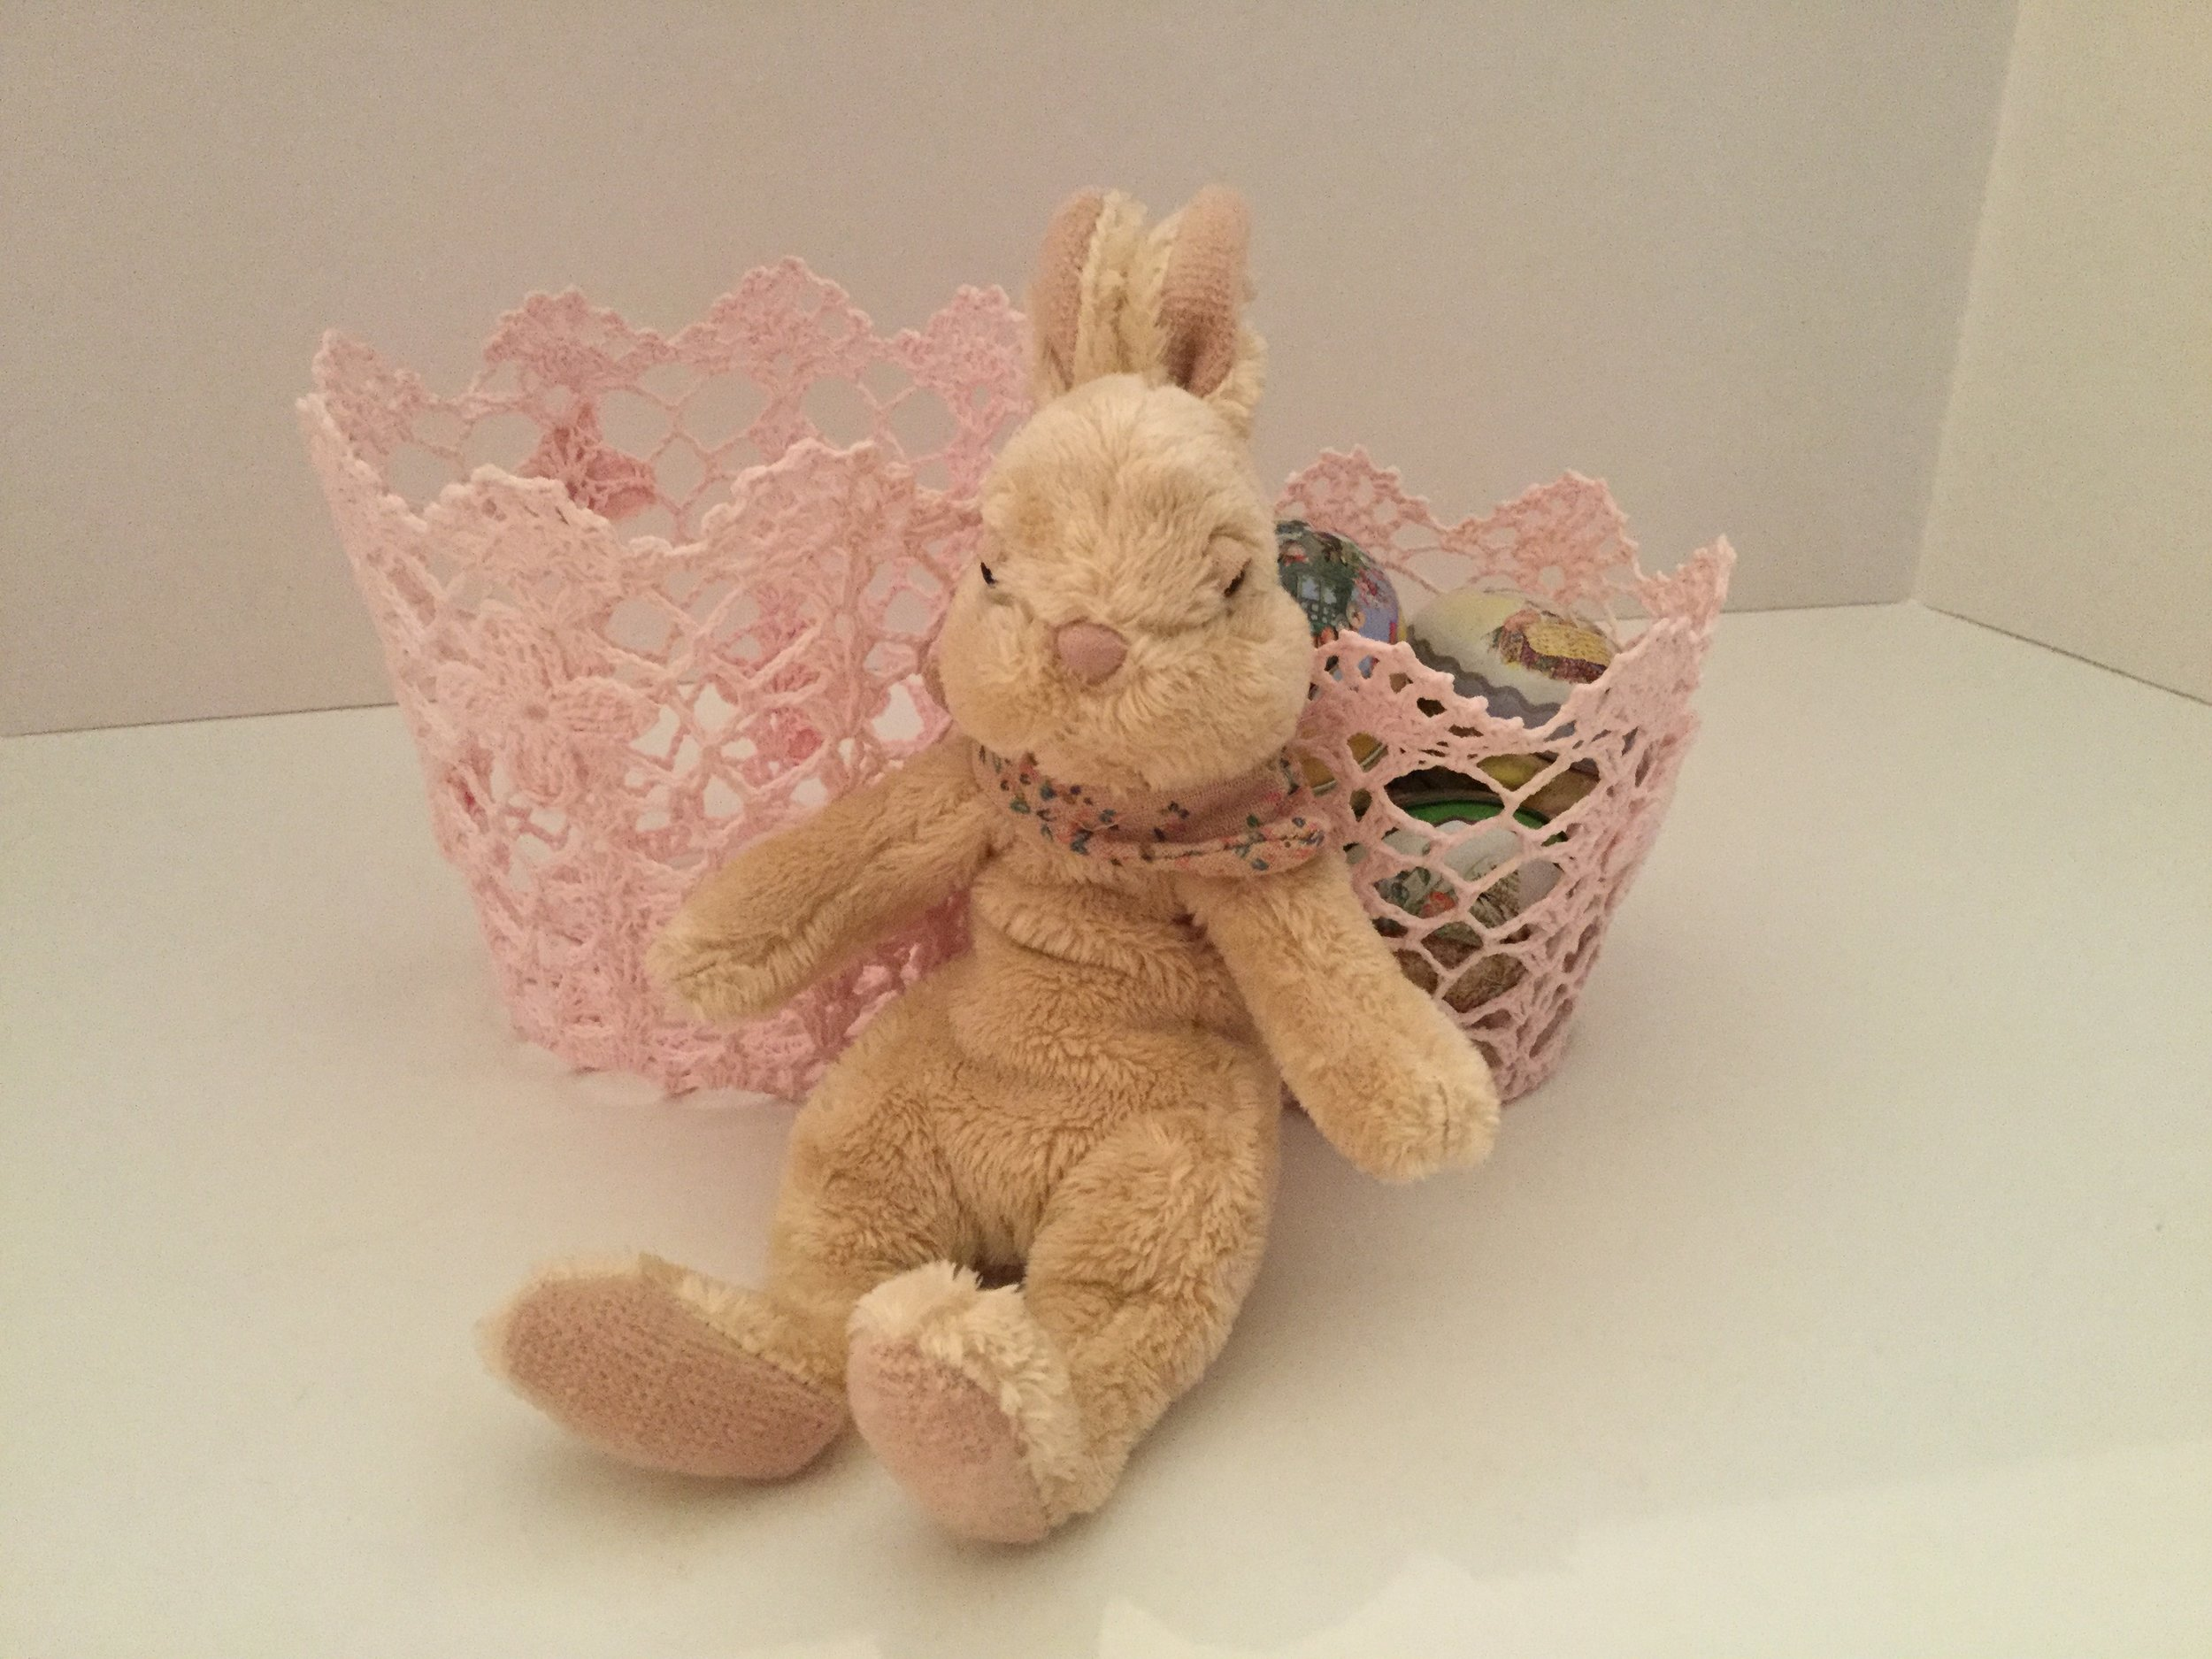 New bunny and pink baskets